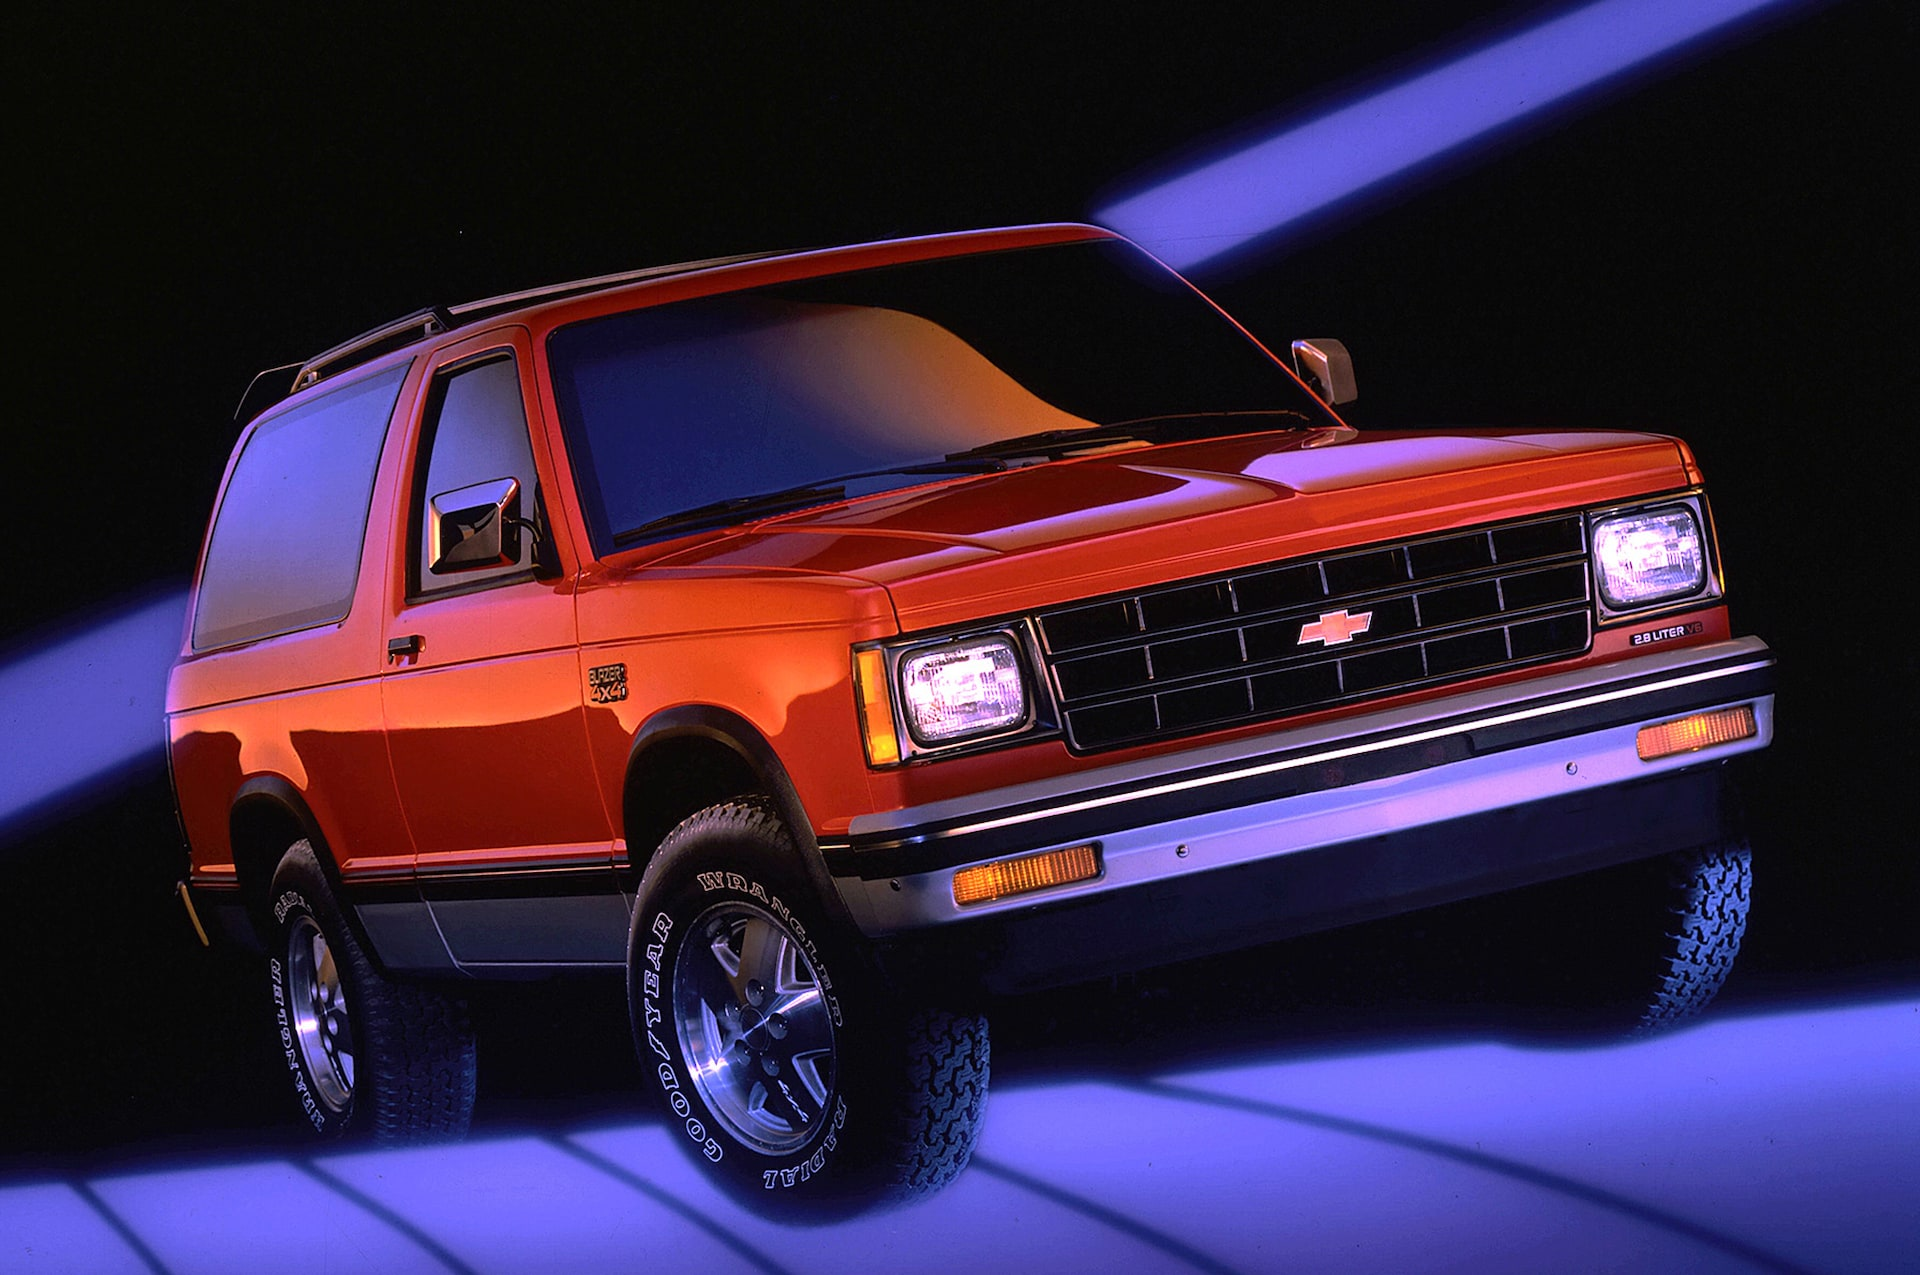 chevrolet blazer photos and history from truck based suv to car based crossover